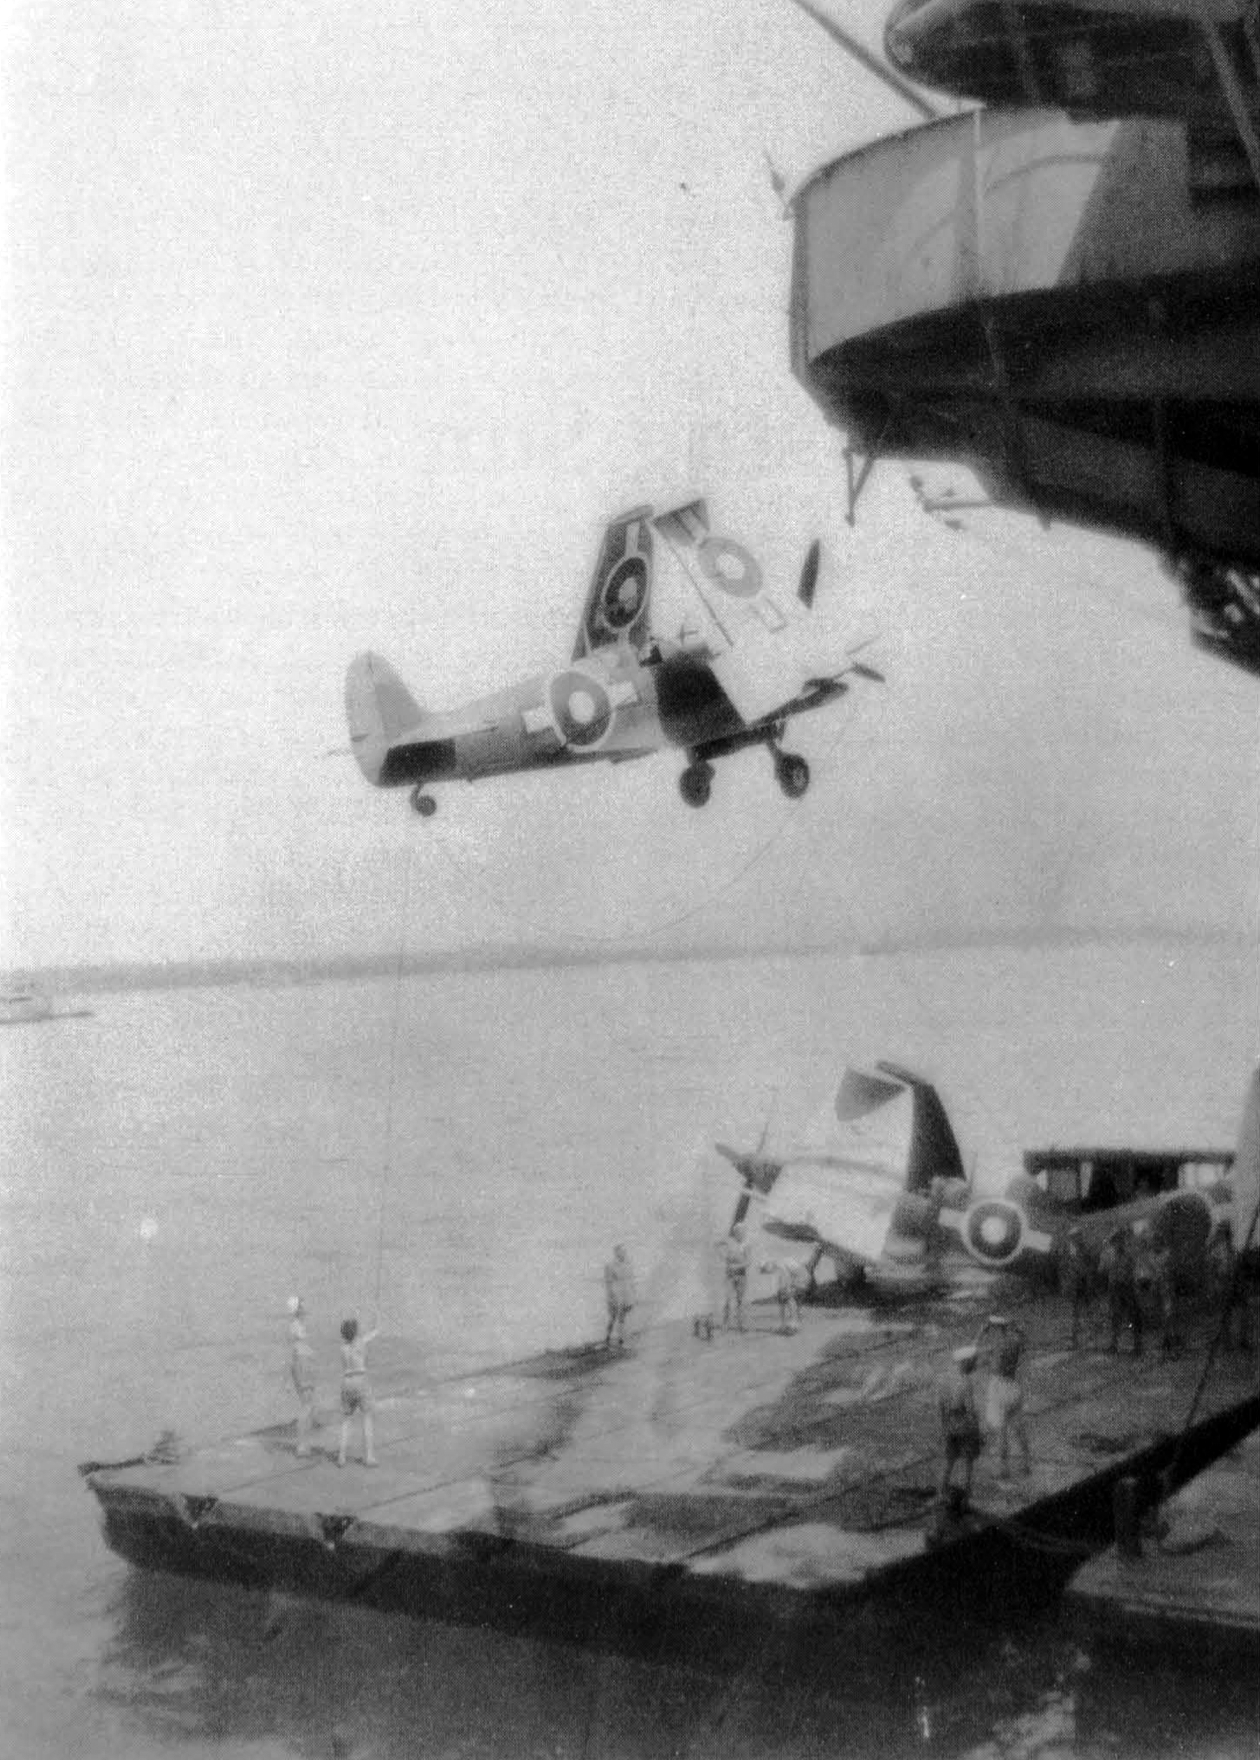 A Seafire is slung over the side of what may be HMS UNICORN before being positioned aboard a lighter for transfer in Leyte Harbour.